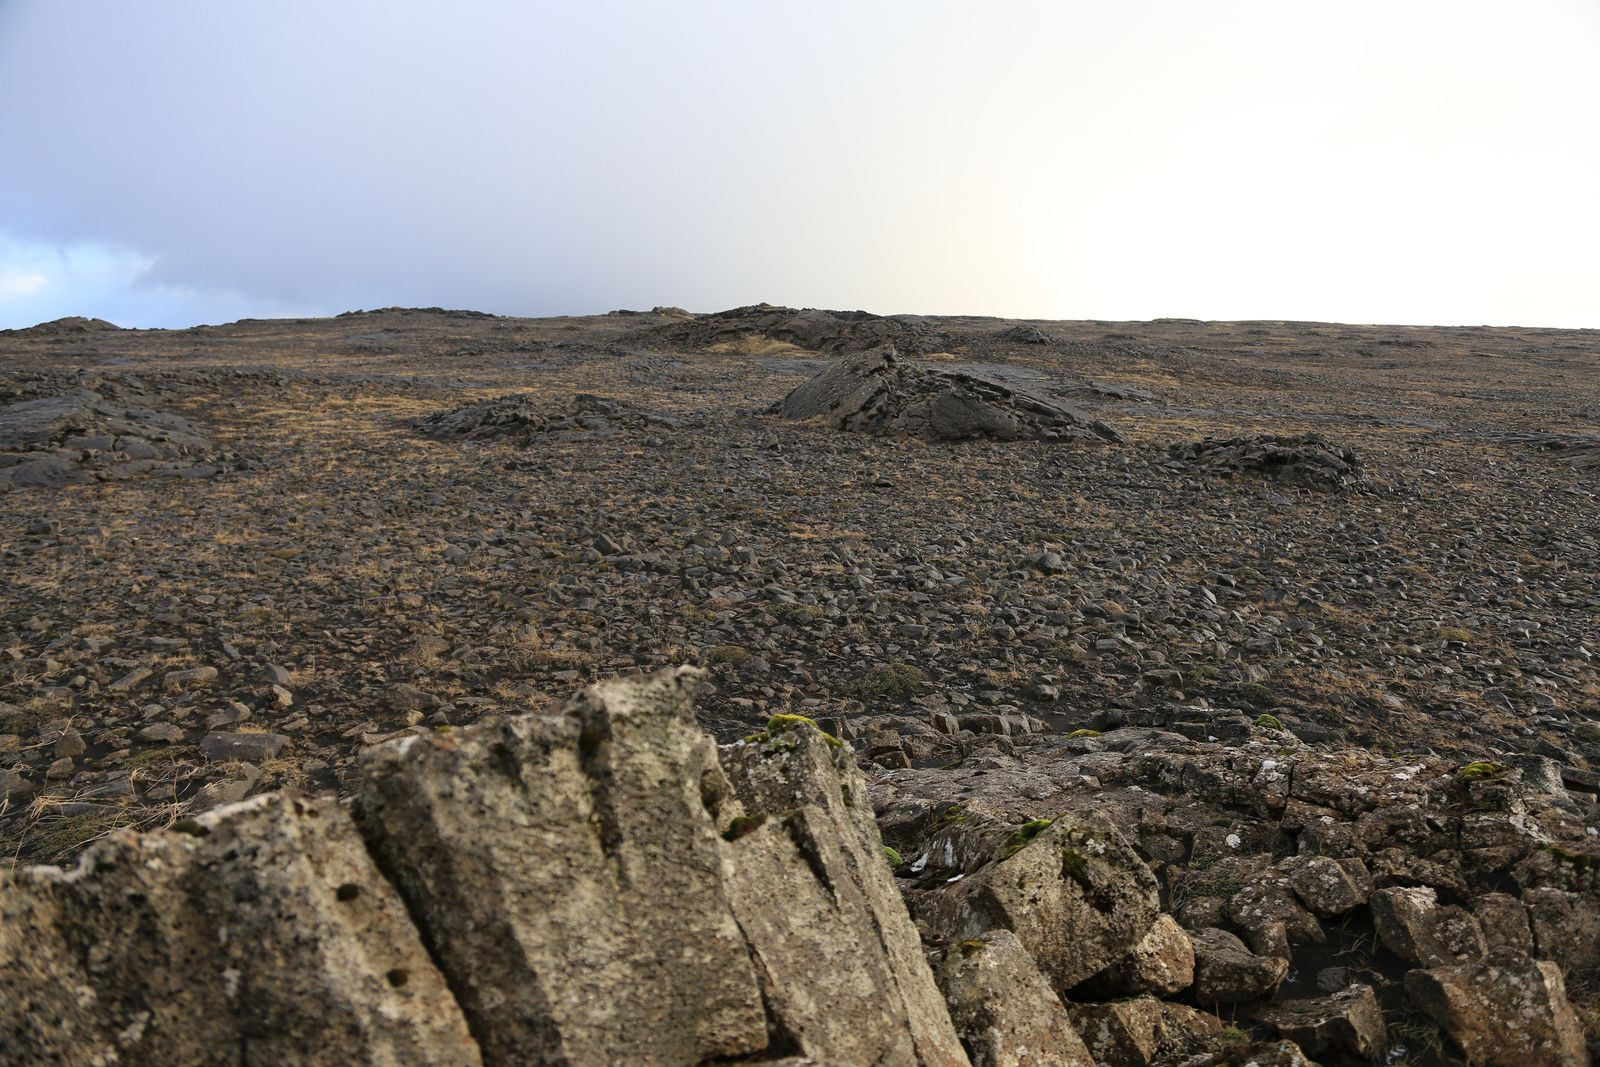 The Hafnaheiði lava field, south of Hafnir - photo © Bernard Duyck 10.2016